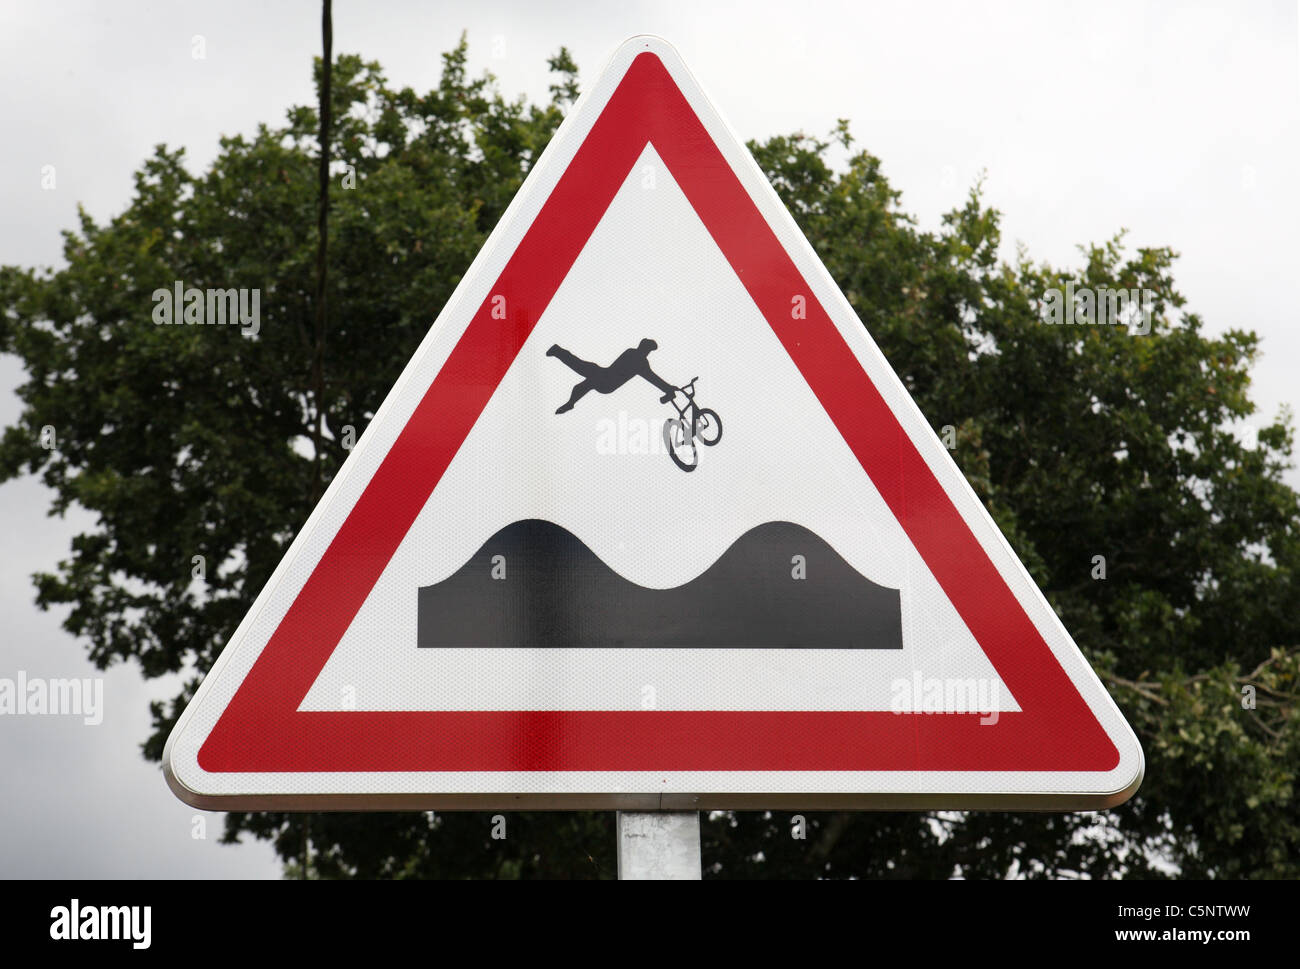 a-road-sign-warning-cyclists-of-an-uneven-surface-ahead-that-could-C5NTWW.jpg